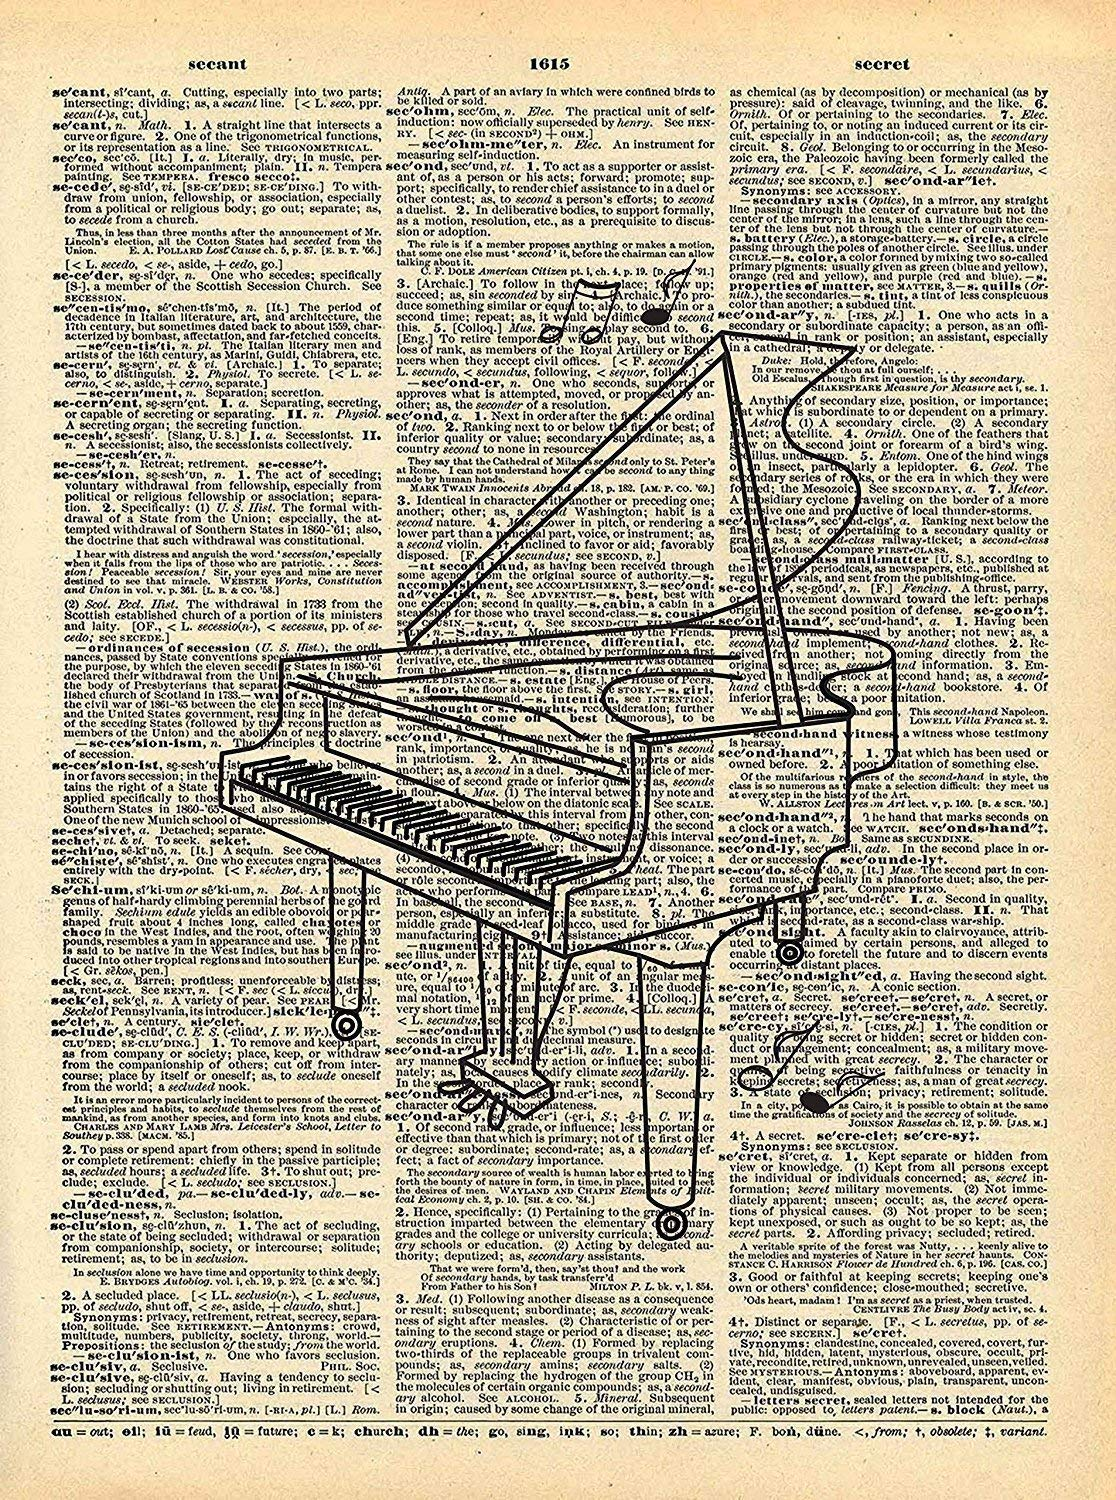 Dictionary Print, Piano Sketch Musical Instrument Vintage Dictionary Art Print 8x10 inch Home Vintage Art for Home Decor Wall Decorations For Living Room Bedroom Office Ready-to-Frame